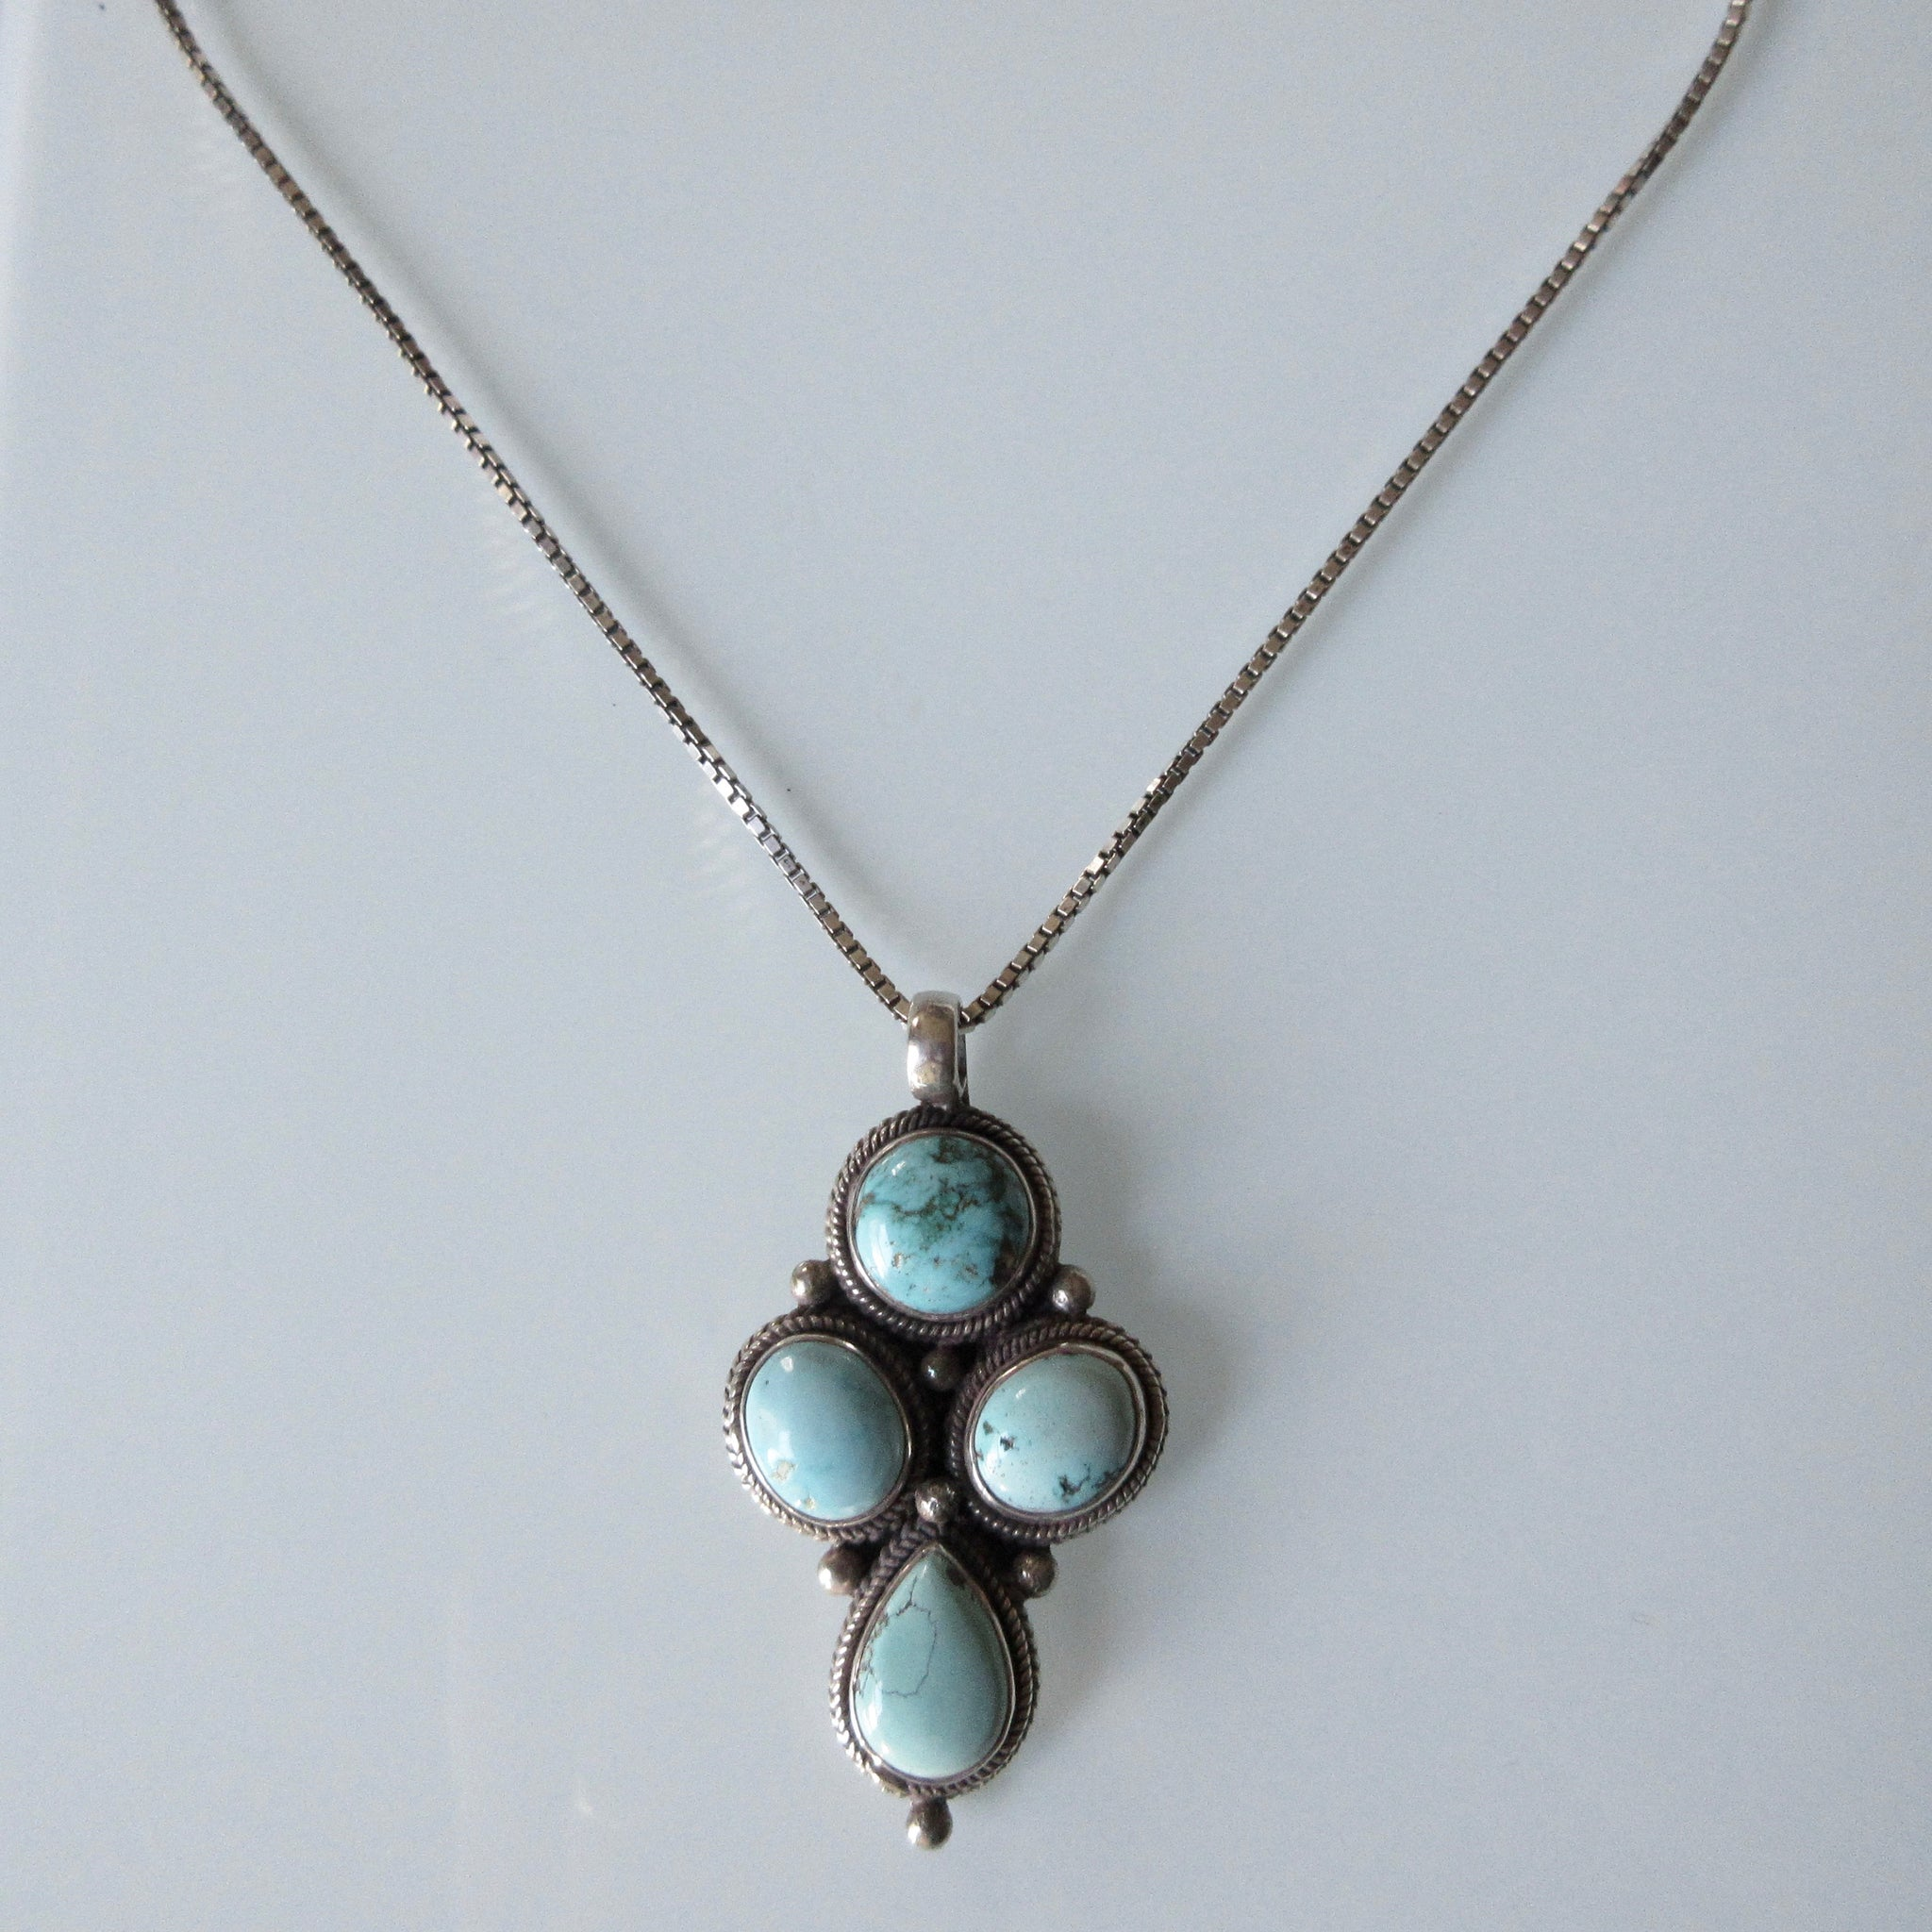 Turquoise Pendant and Sterling Silver Necklace